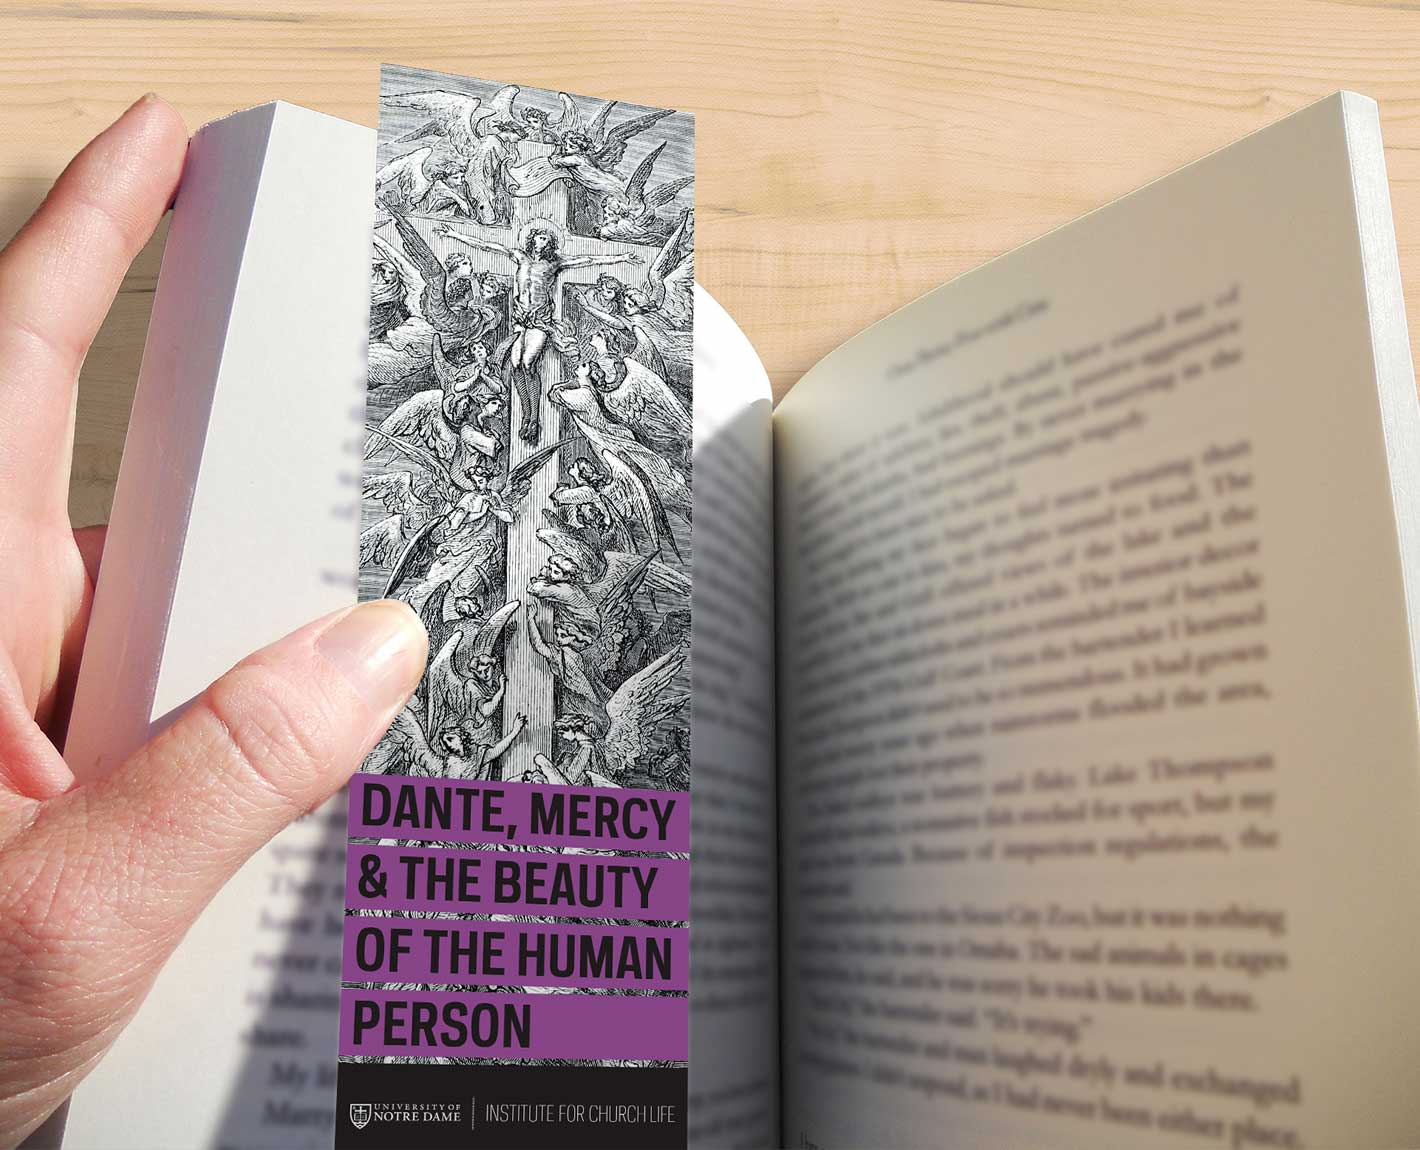 Notre Dame Institute for Church Life bookmark designed by Tara Hoover